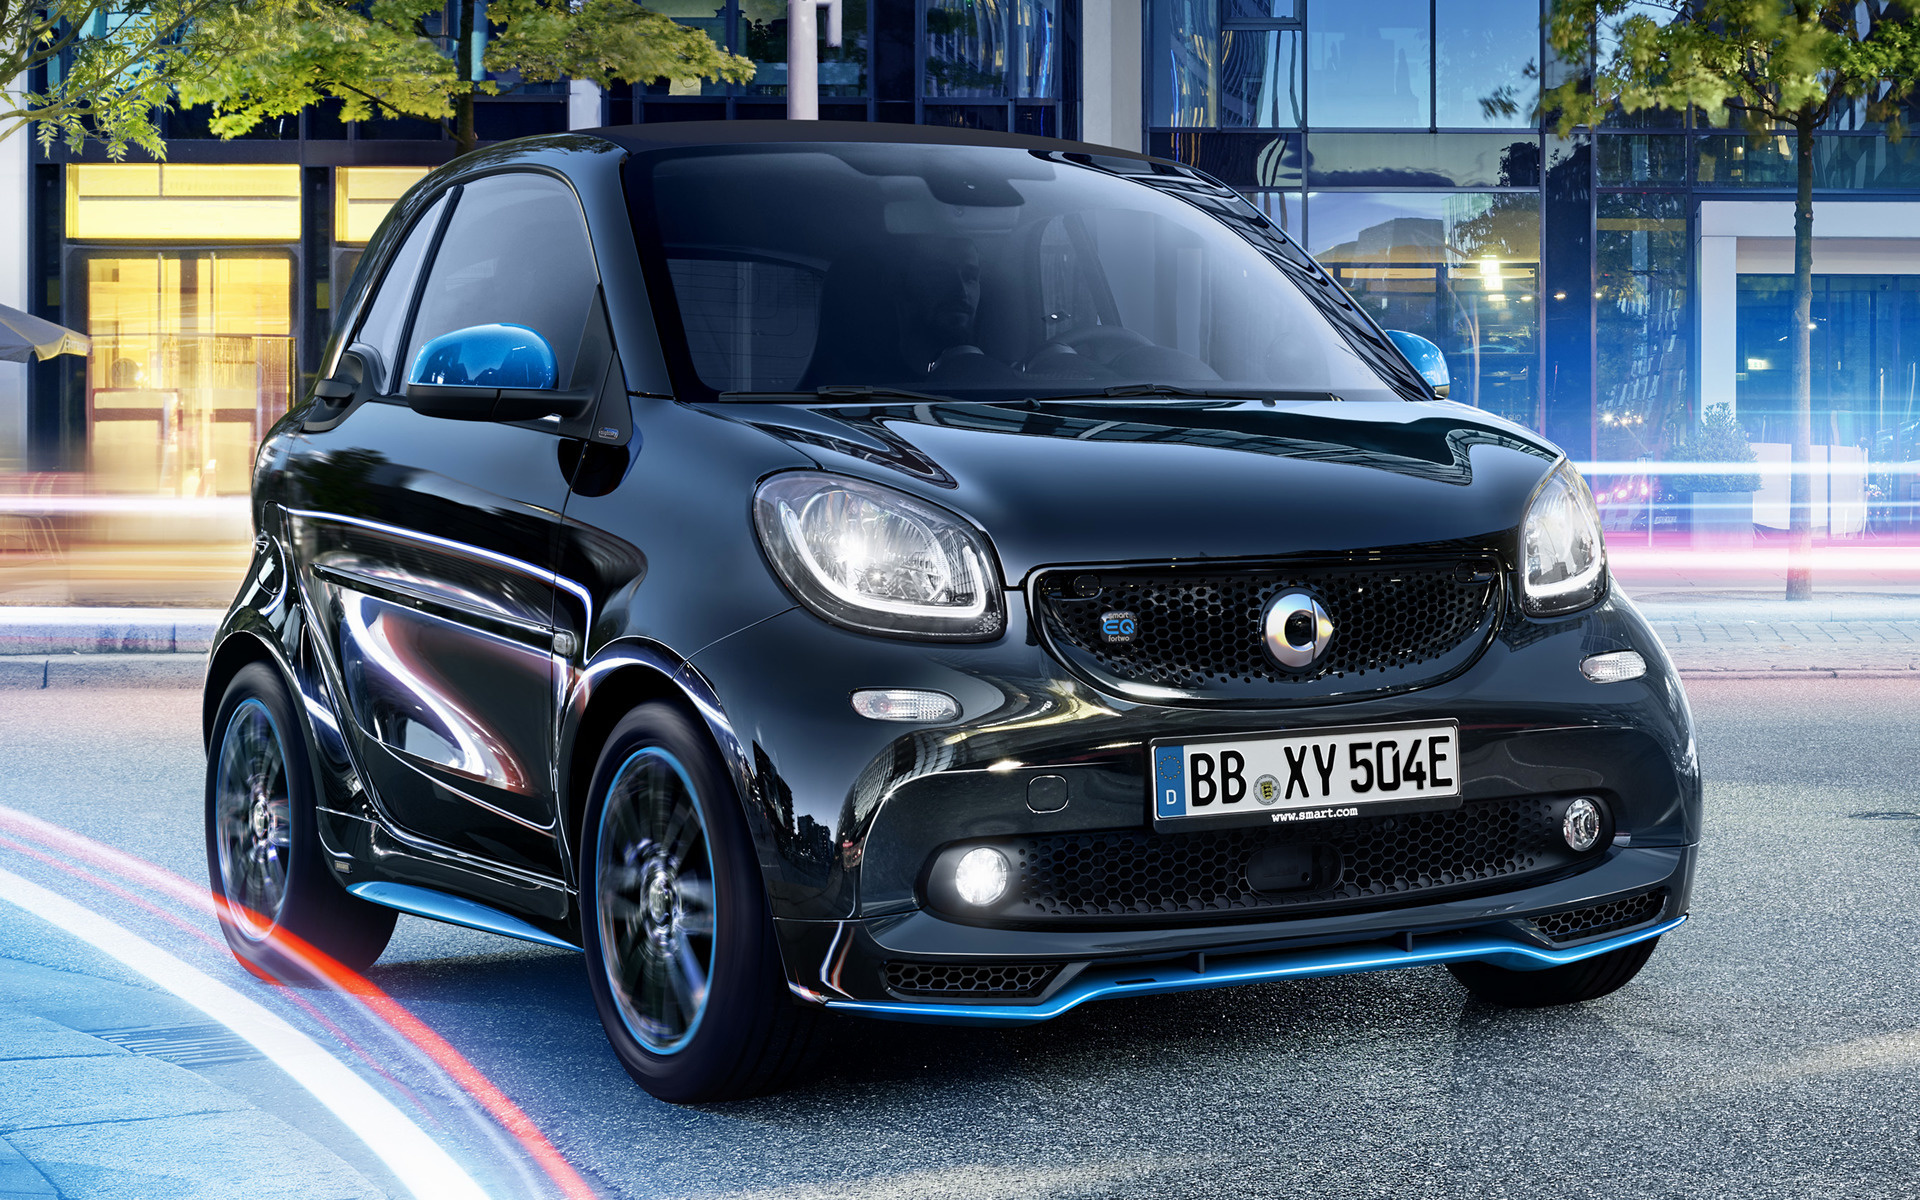 2017 Dodge Ram >> 2018 Smart EQ Fortwo Nightsky Edition - Wallpapers and HD Images | Car Pixel